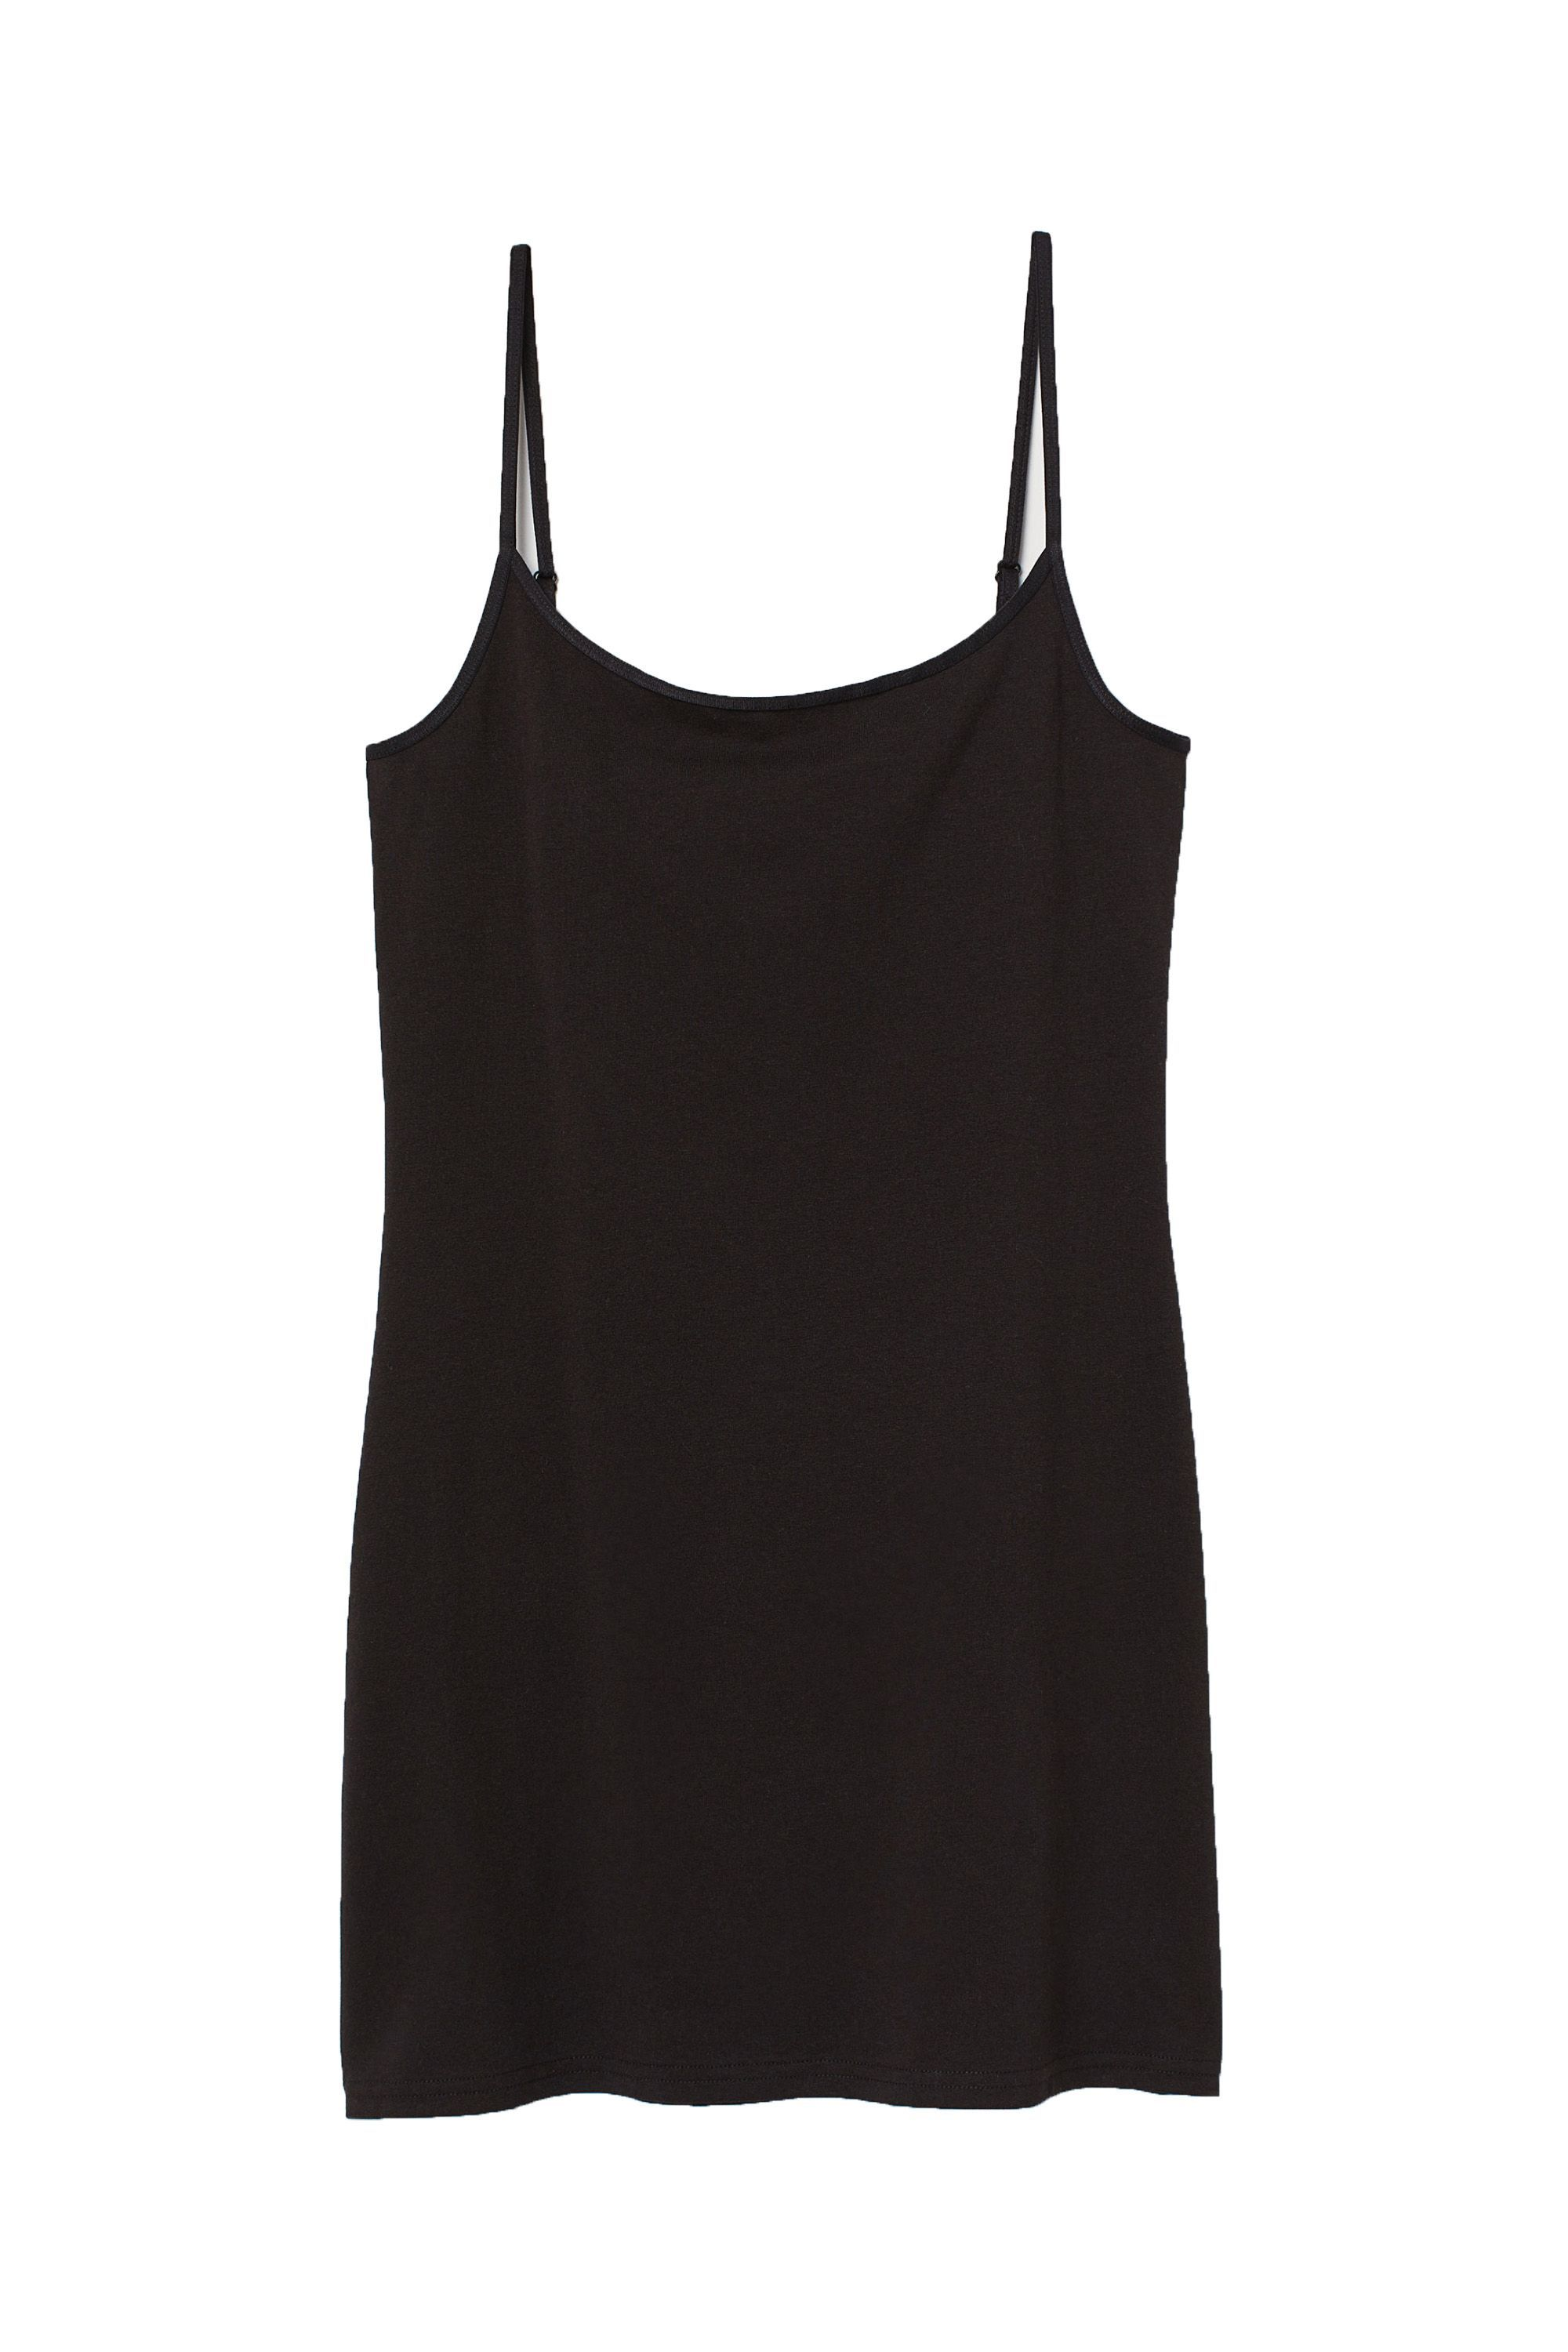 All Lace Camisole Tank Top Women/'s Blouse Long Lean Stretch Sheer Shirt Black